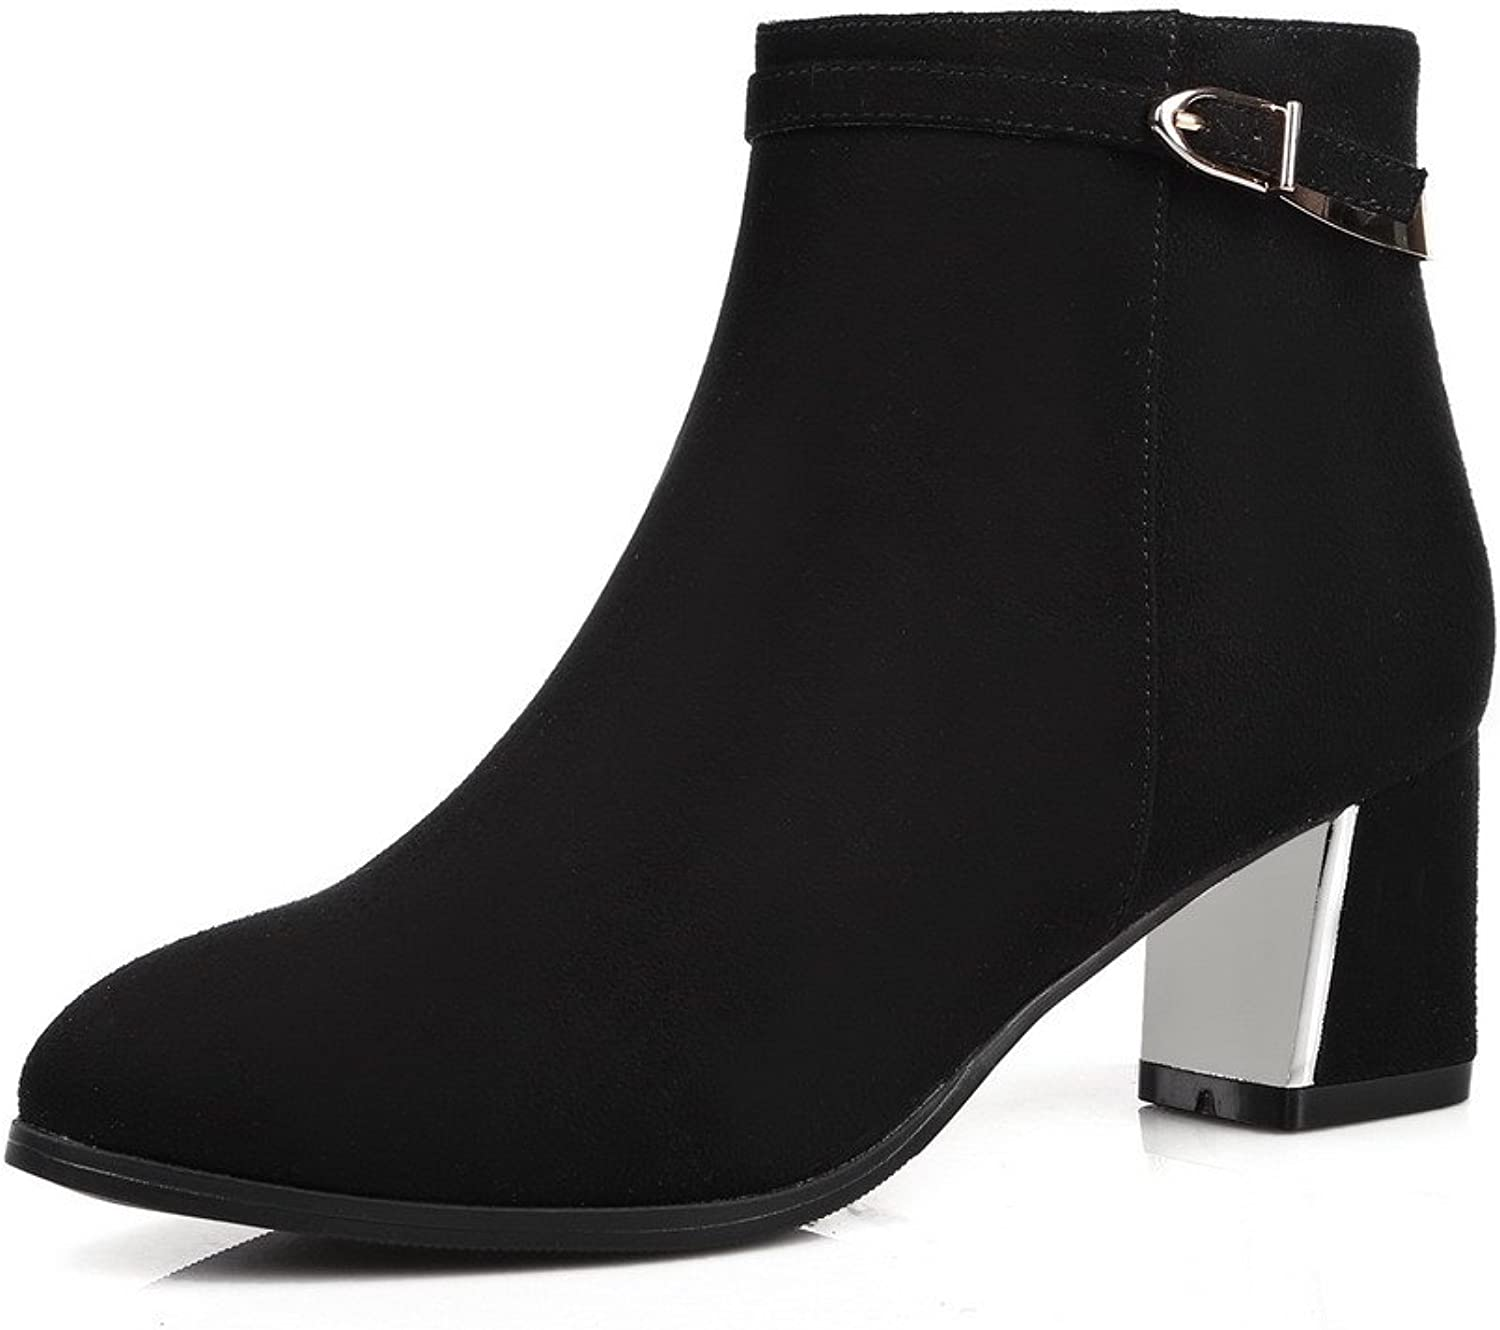 AmoonyFashion Women's Round-Toe Closed-Toe Kitten-Heels Boots with Rubber Soles and Rough Heels